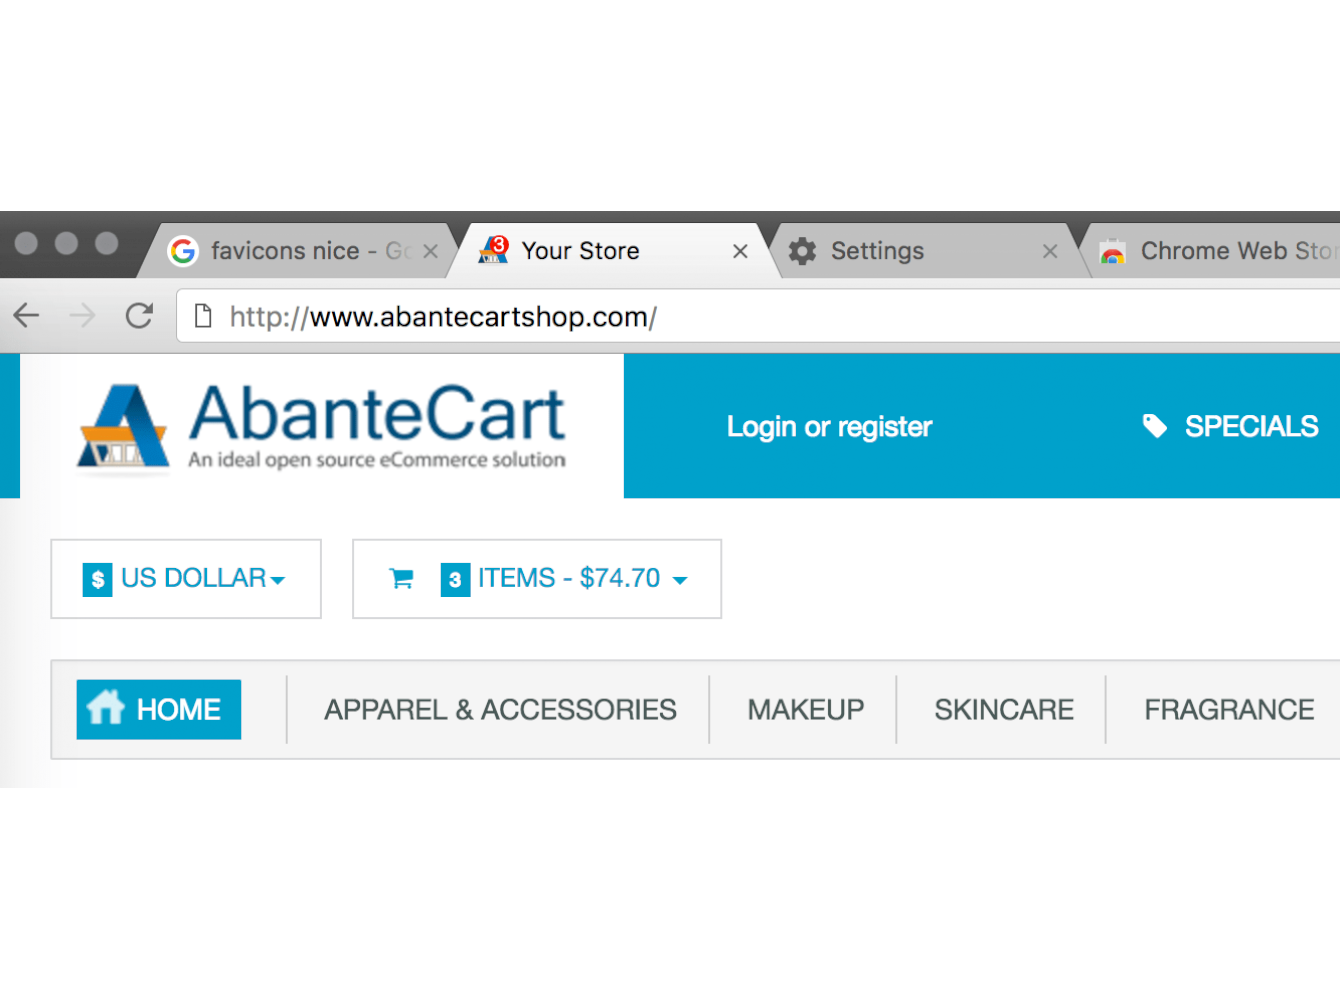 Favicon cart (basket in browser)